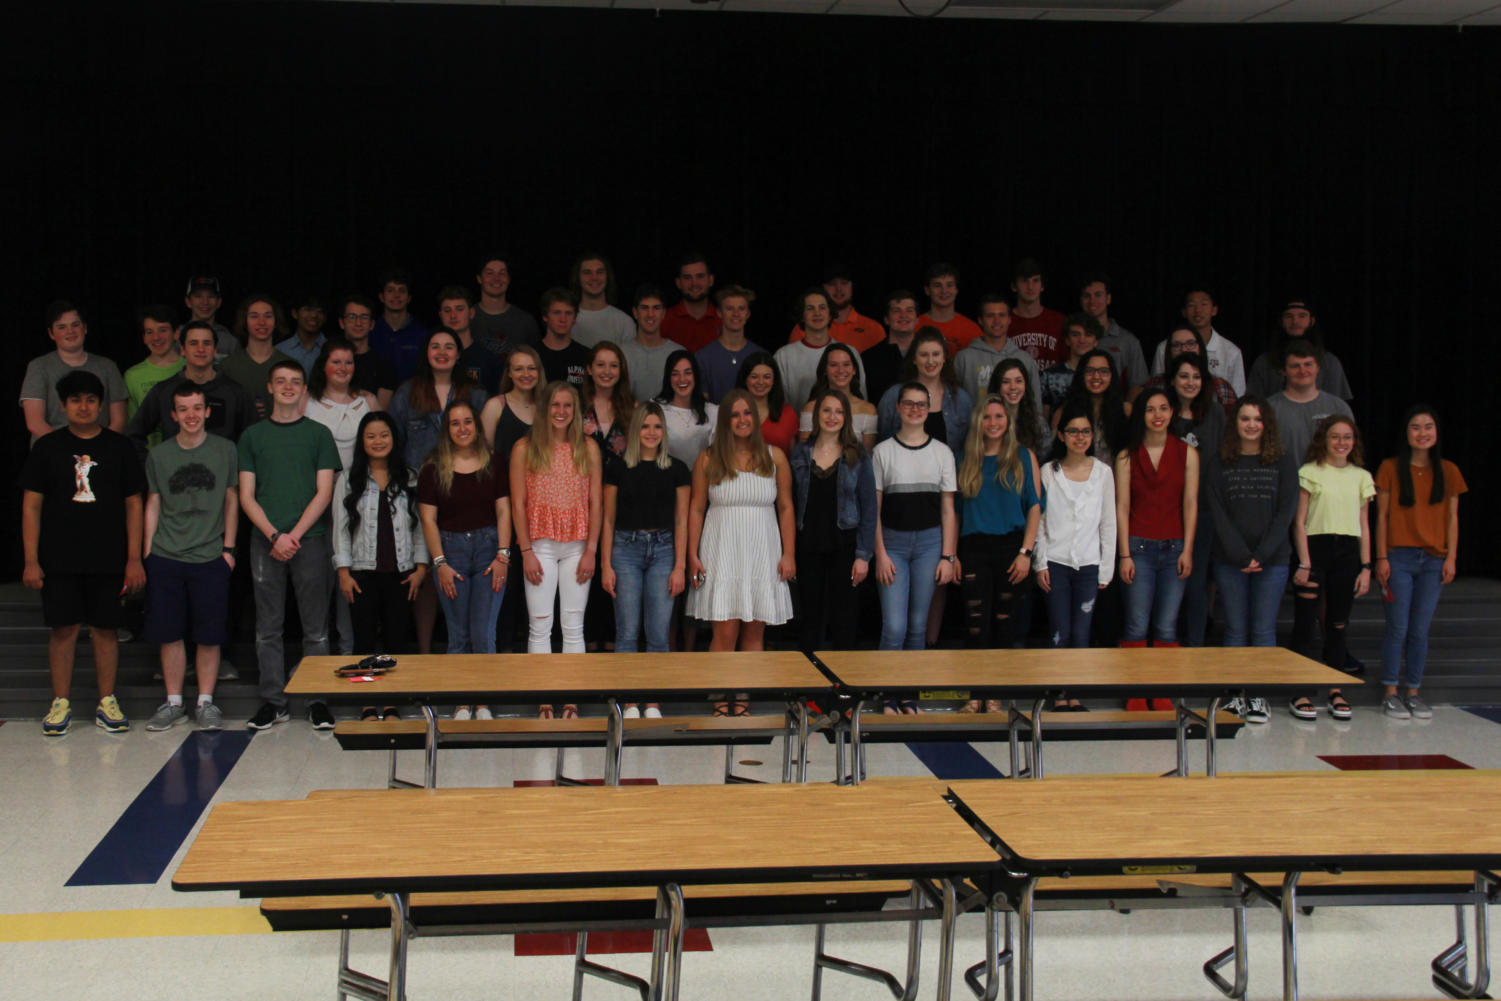 Seniors+who+attended+Hart+elementary+pose+on+stage+together.+Groups+of+other+seniors+also+attended+their+respective+elementary+schools.+